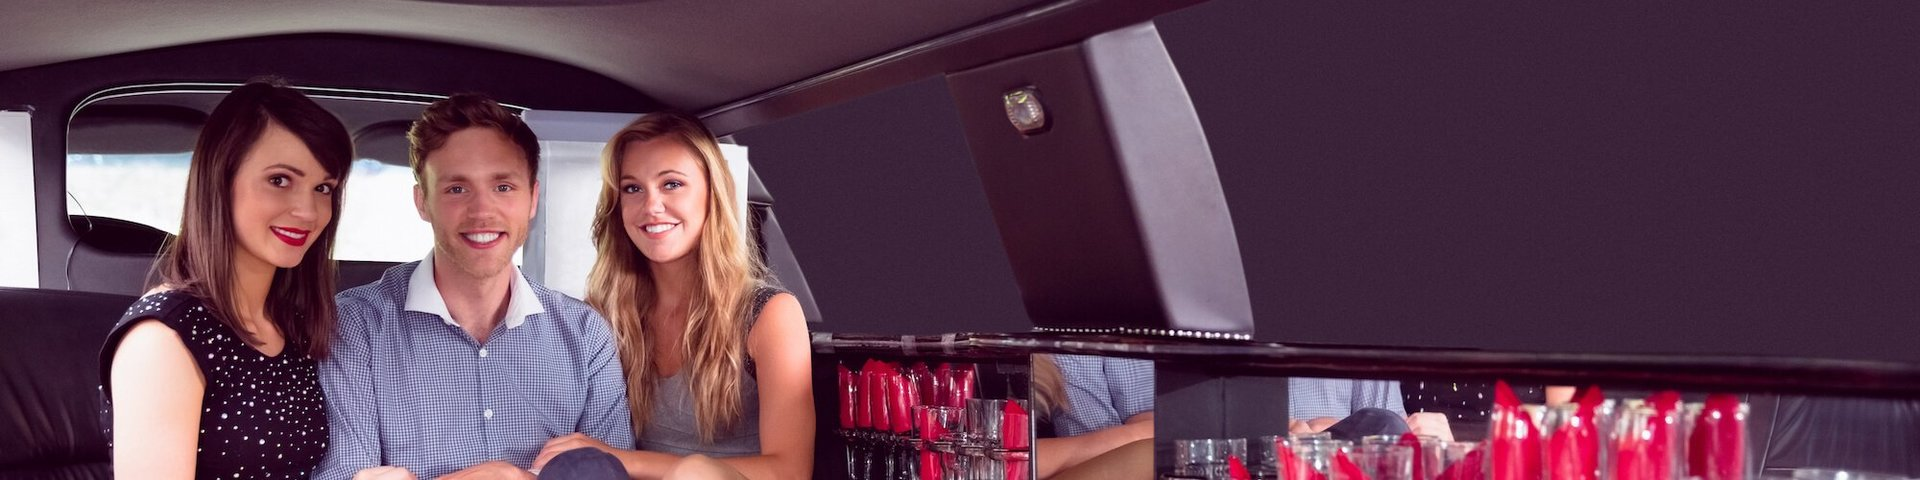 San Diego limo special occasions